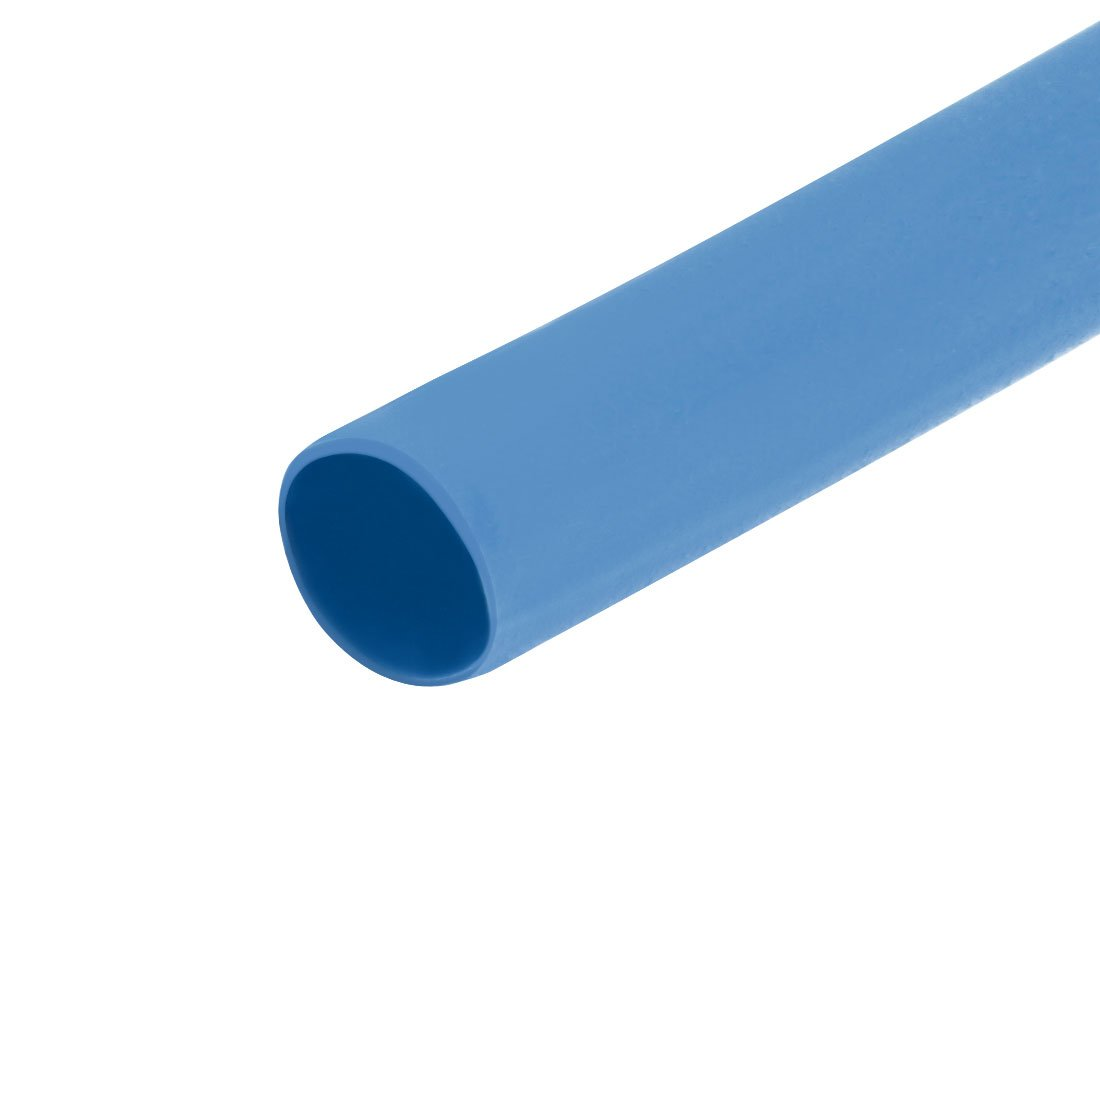 uxcell Heat Shrink Tubing 1.5mm Dia 10m 2:1 Heat Shrink Tube Wire Wrap Blue